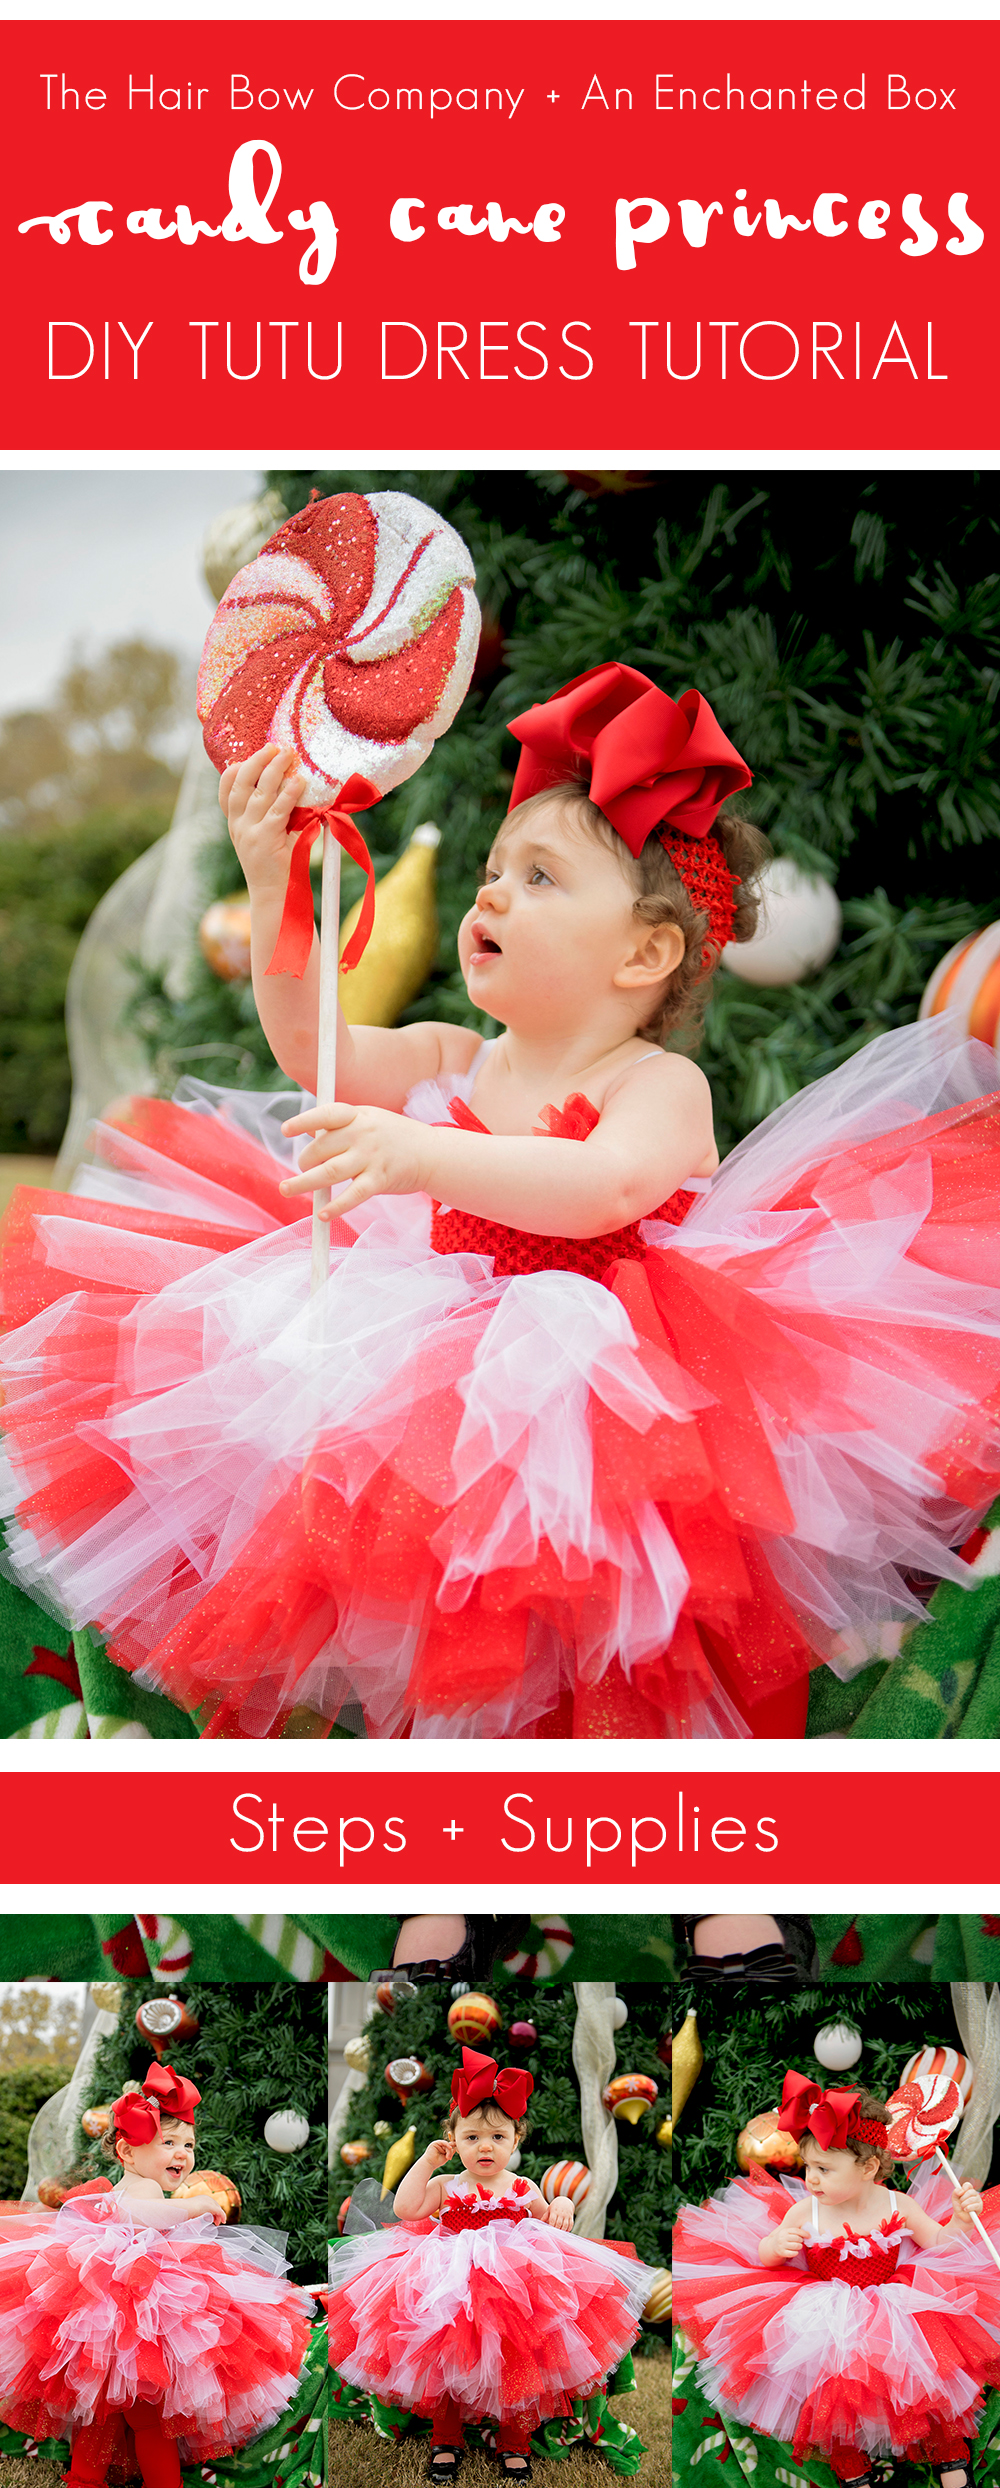 6c12602105b81 Candy Cane Princess Christmas Tutu Dress Tutorial - The Hair Bow ...